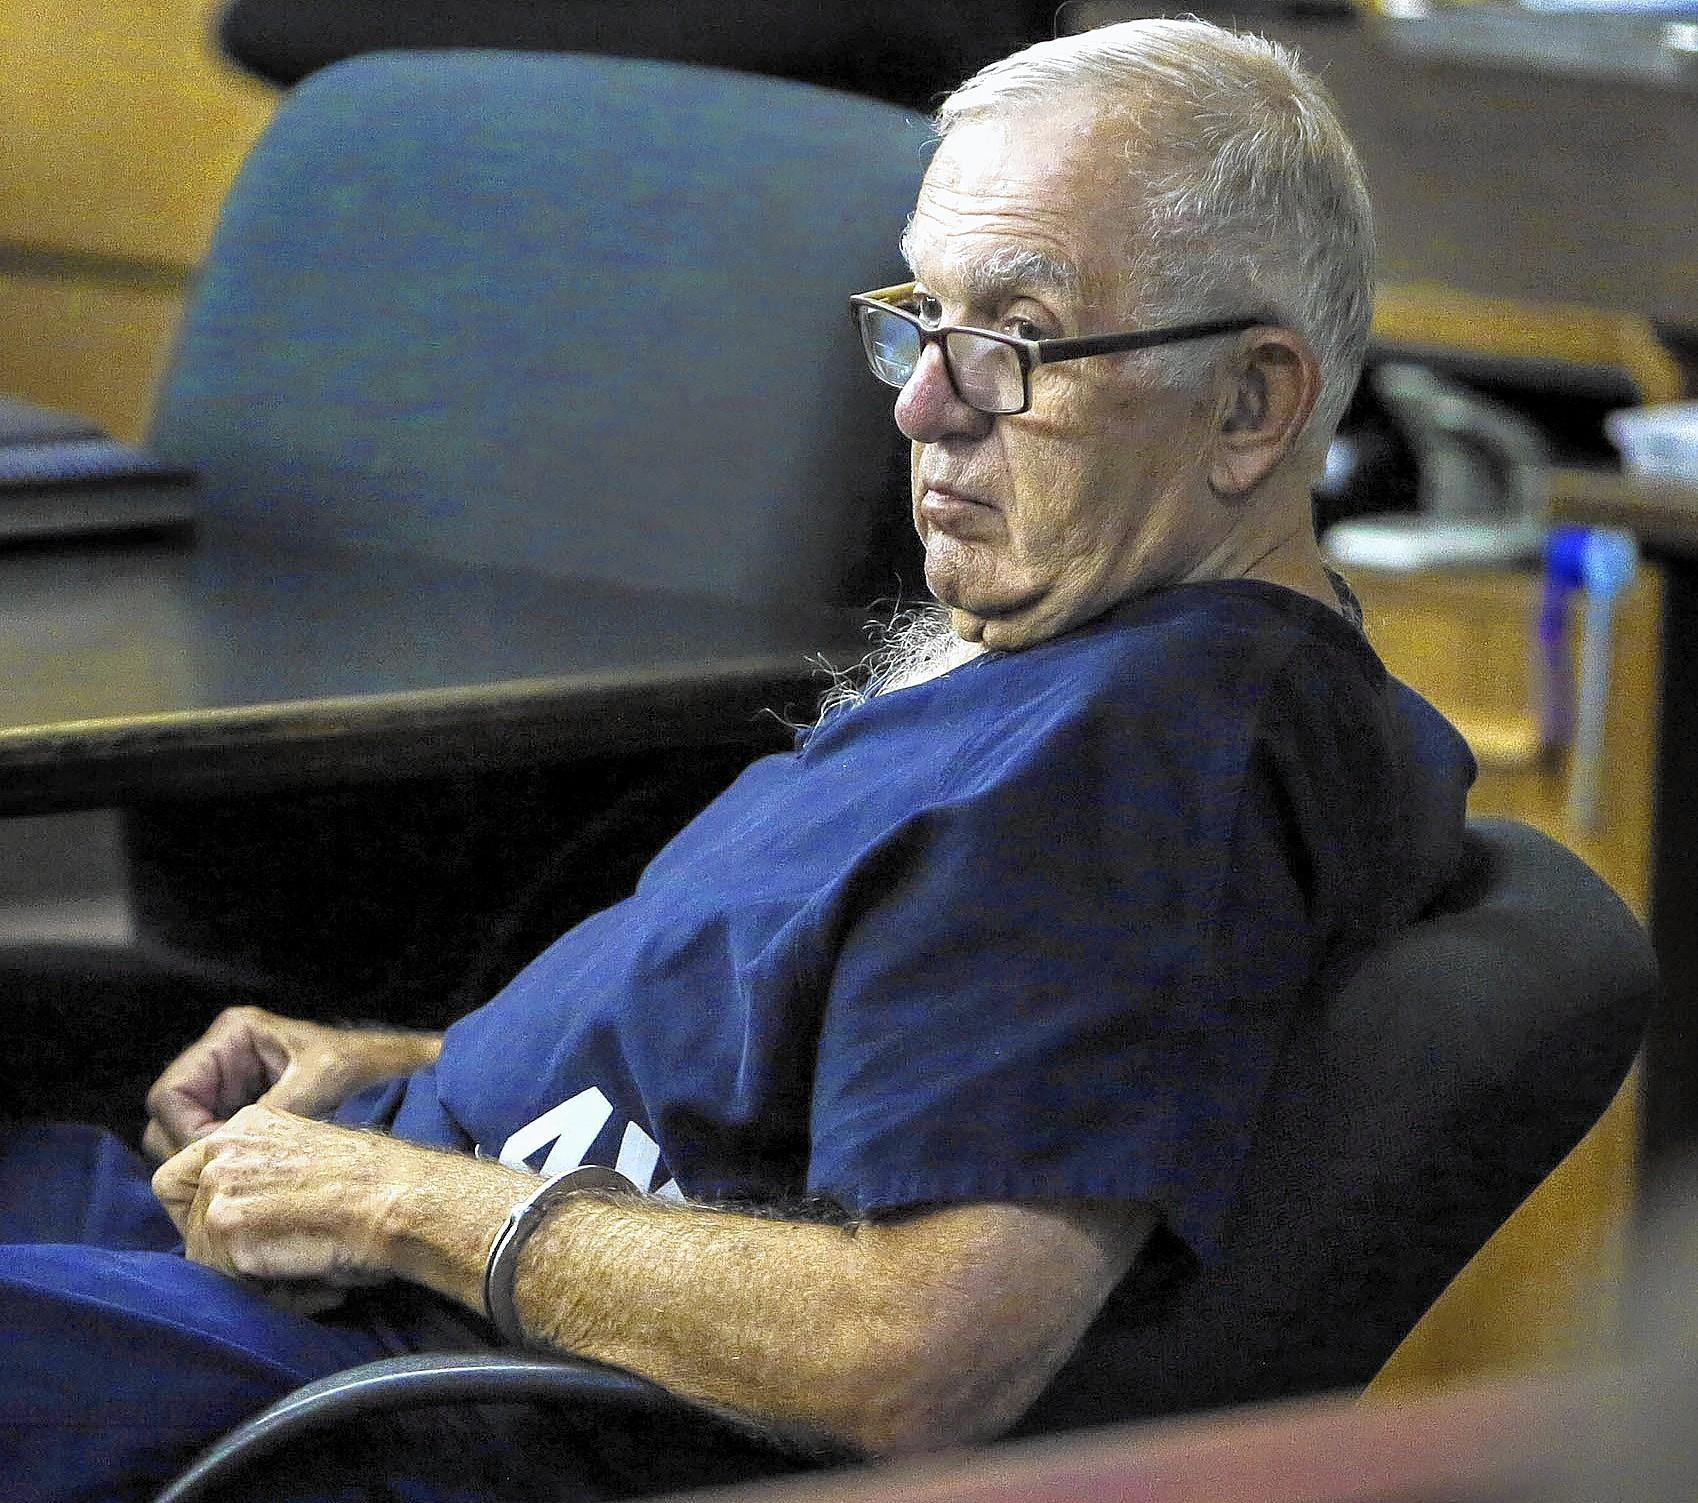 Dennis DeMartin sits in court Tuesday morning, January 28, 2014, where he was sentenced to four months in jail and nearly two months on house arrest for his actions as a juror in polo mogul John Goodman'